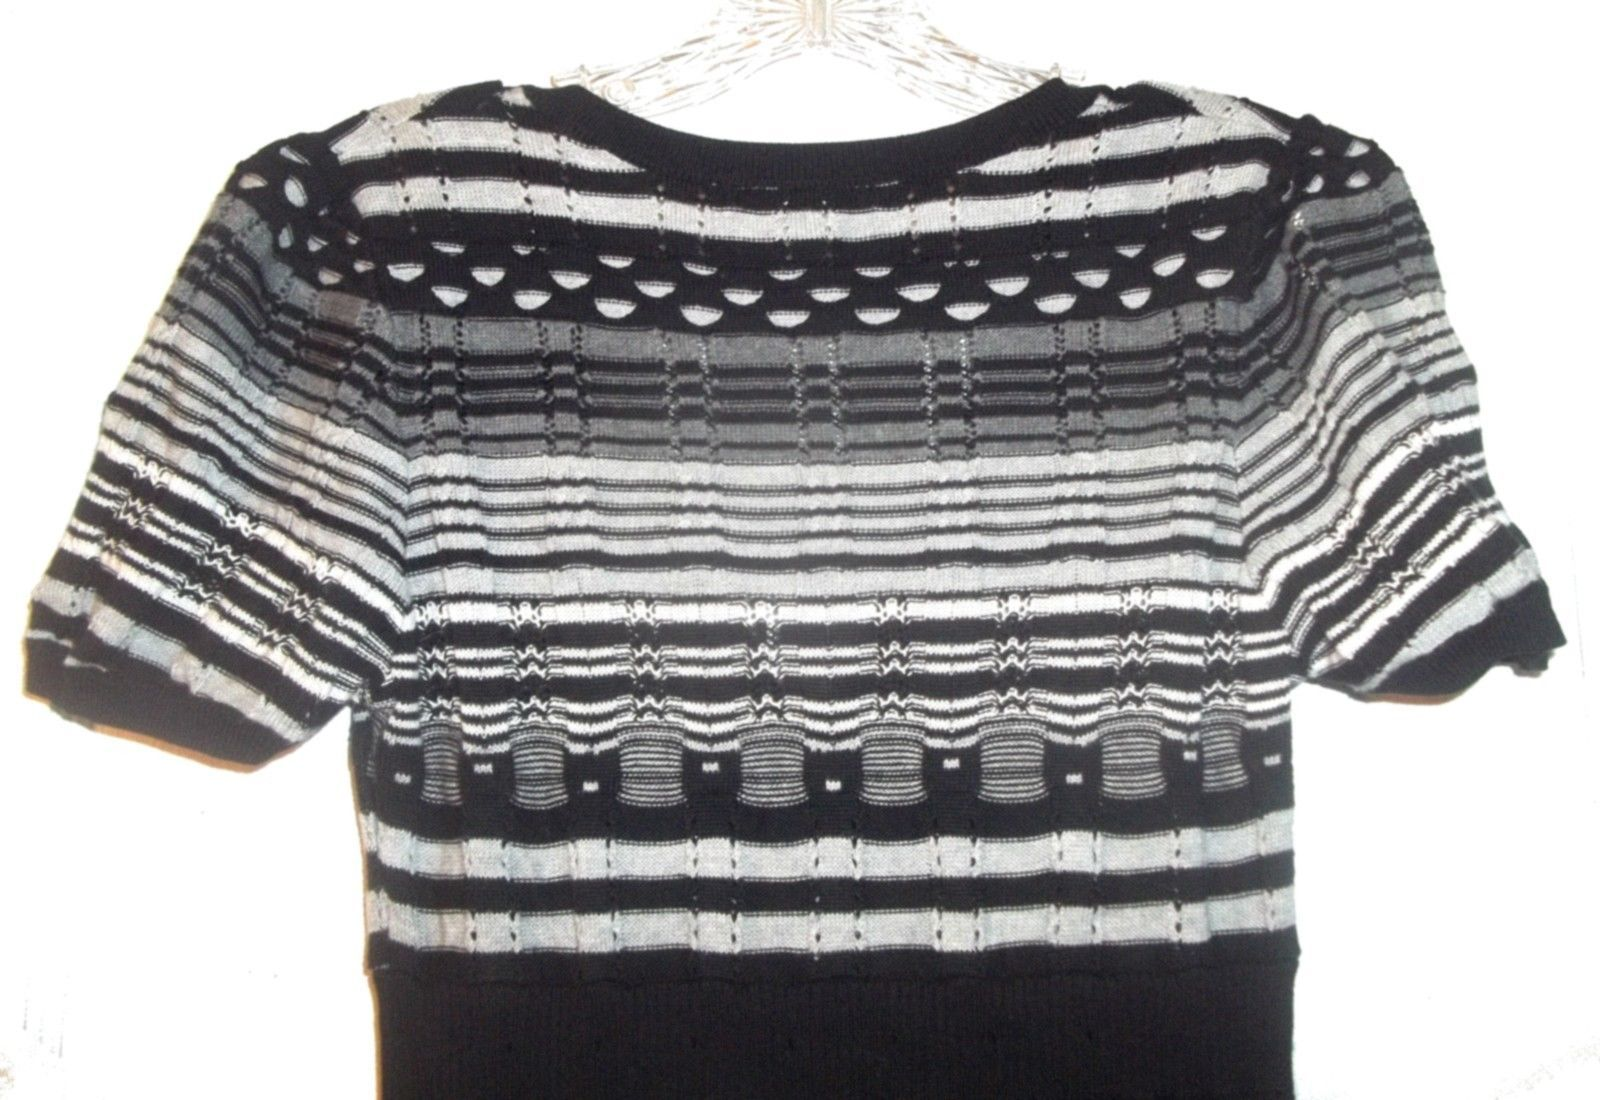 Size Jrs L - Forever Black, White & Gray Striped Sweater Dress w/V-Neckline